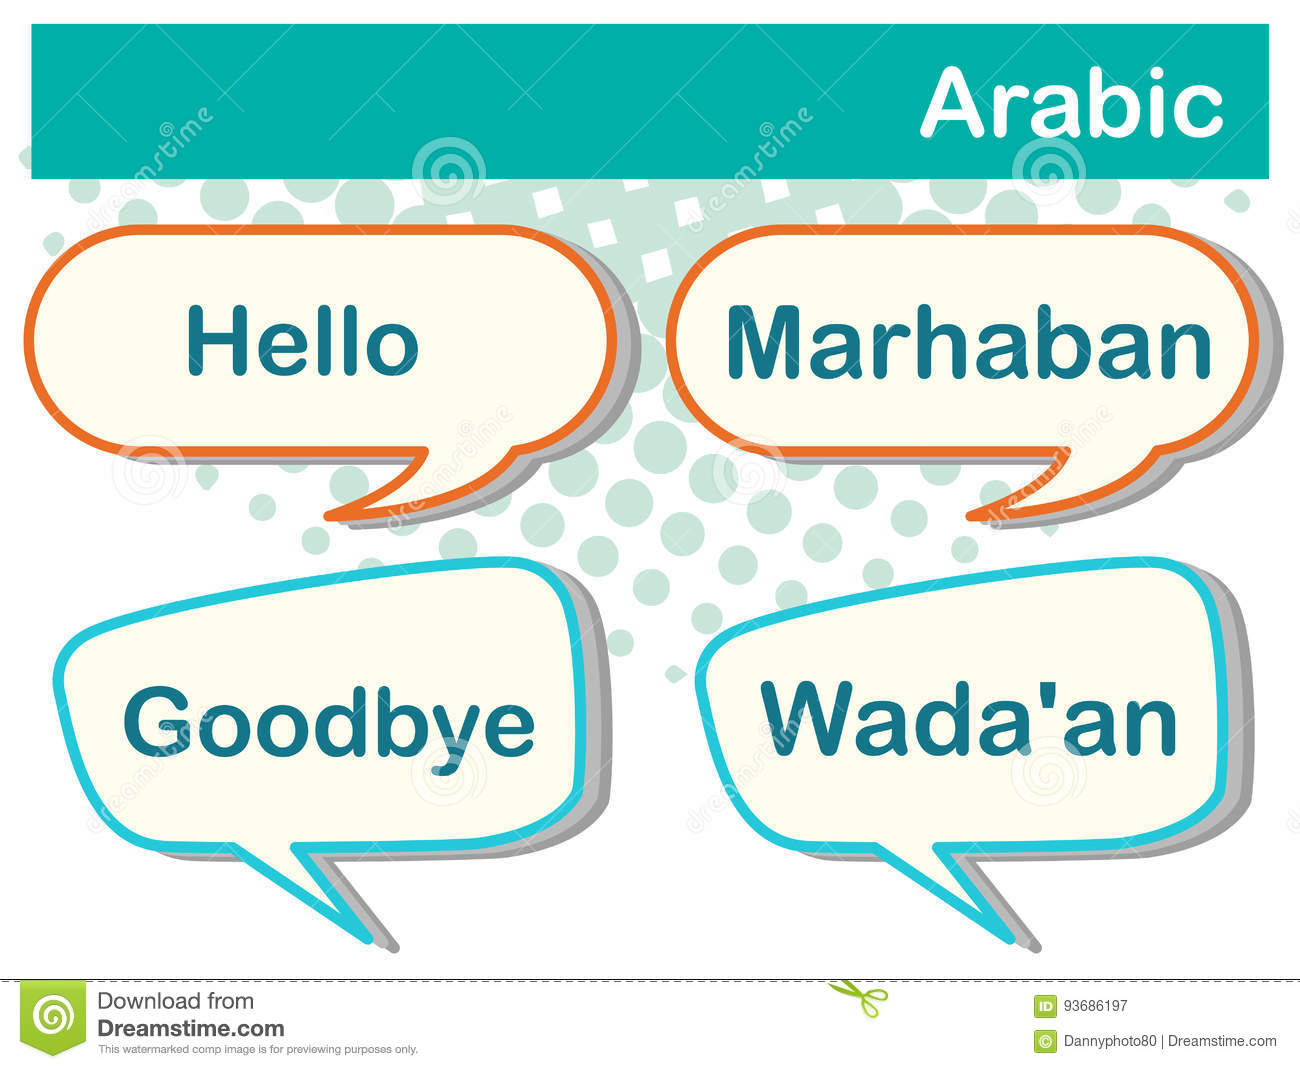 Greeting words in arabic on poster stock vector illustration of download greeting words in arabic on poster stock vector illustration of speech language m4hsunfo